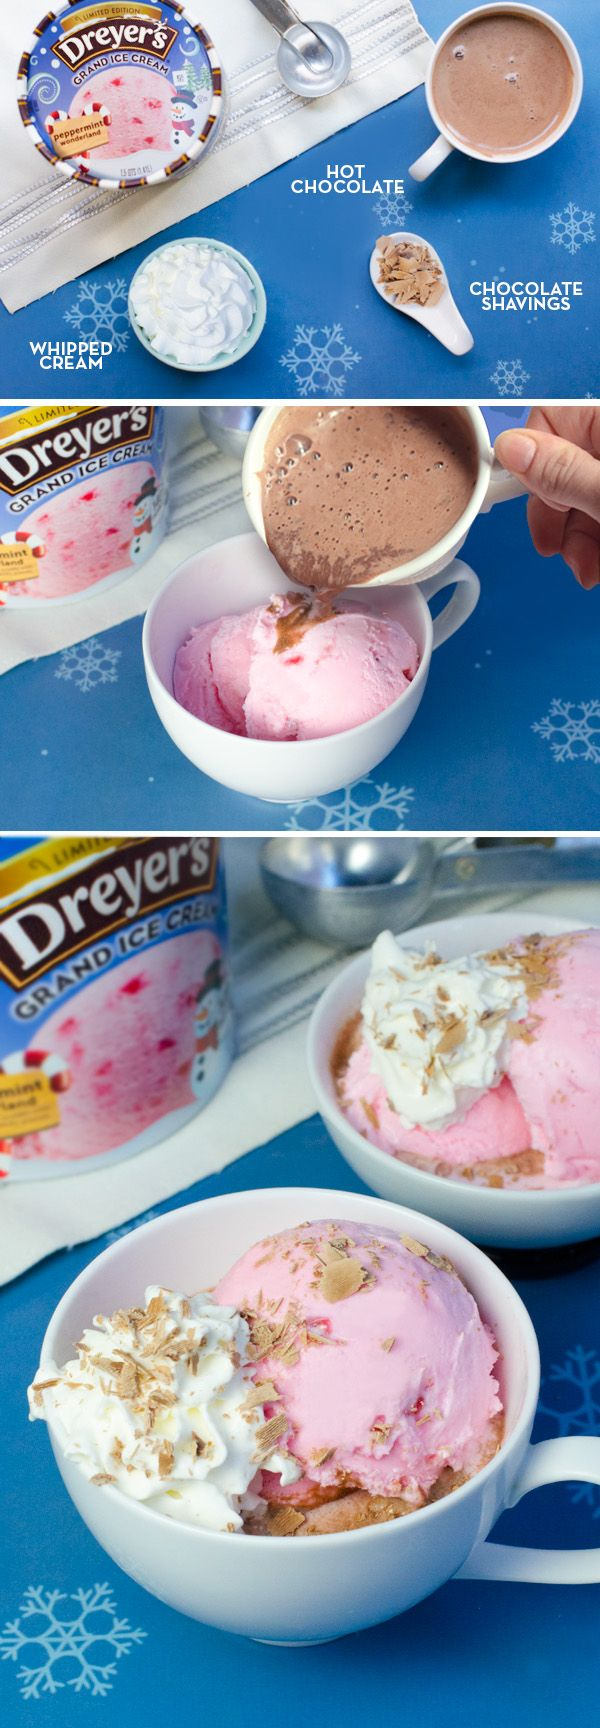 Dreyer's Peppermint Cocoa Sundae: Your favorite wintery drink just got a minty upgrade! Place a scoop or two of Dreyer's Peppermint Wonderland ice cream into your favorite mug and top with a drizzle of hot chocolate. Add some whipped cream and a sprinkle of chocolate shavings for a cozy treat the whole family will love.